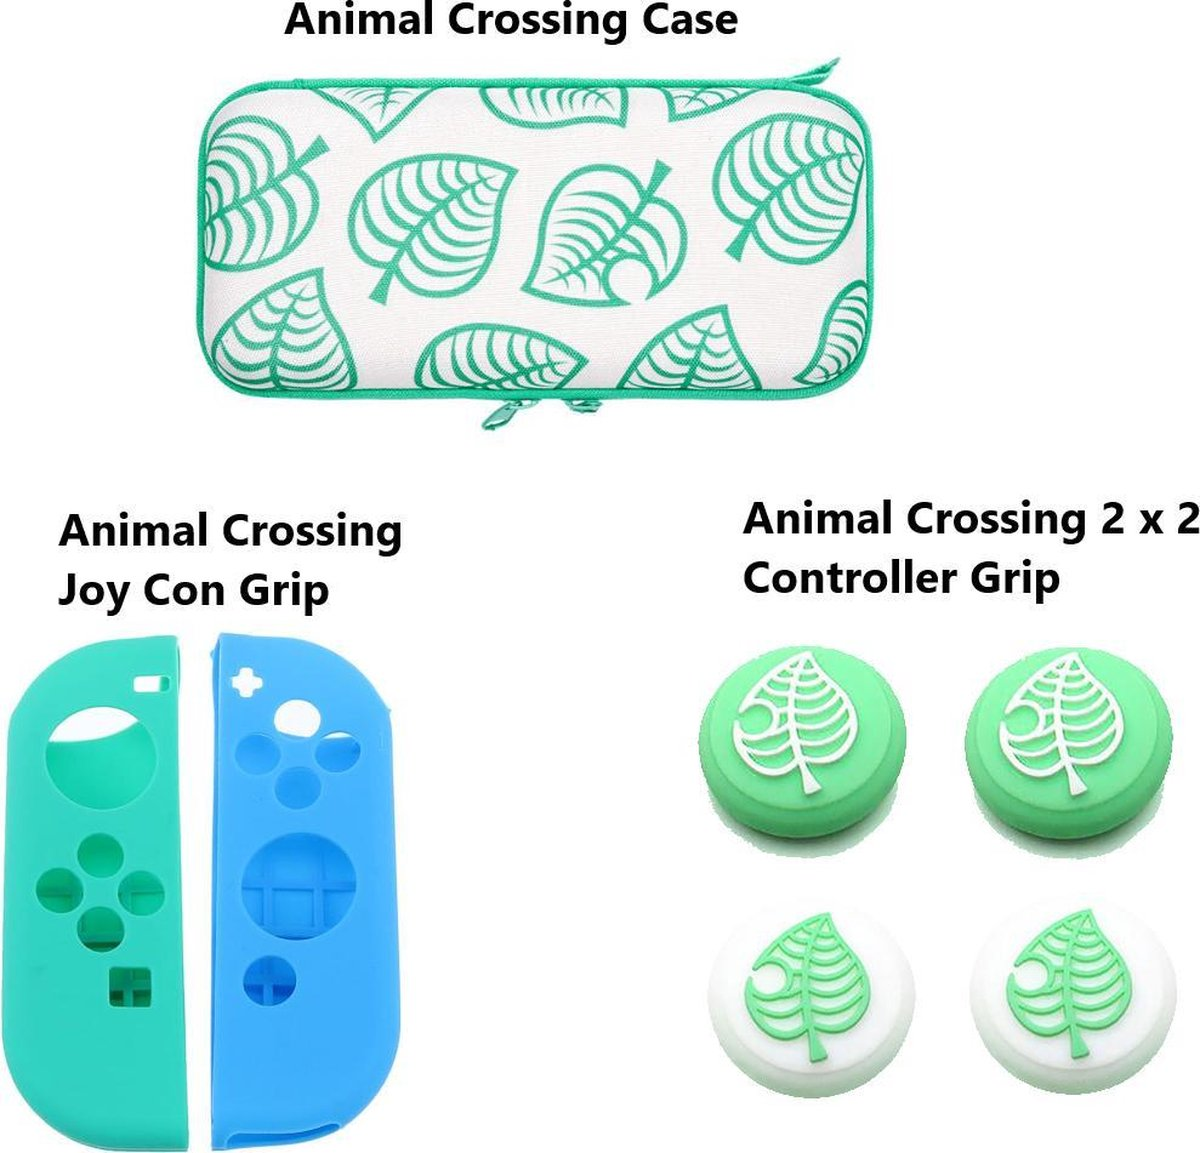 Animal Crossing - Nintendo Switch Accessoires - Nintendo Switch Case - Animal Crossing Switch - Nint